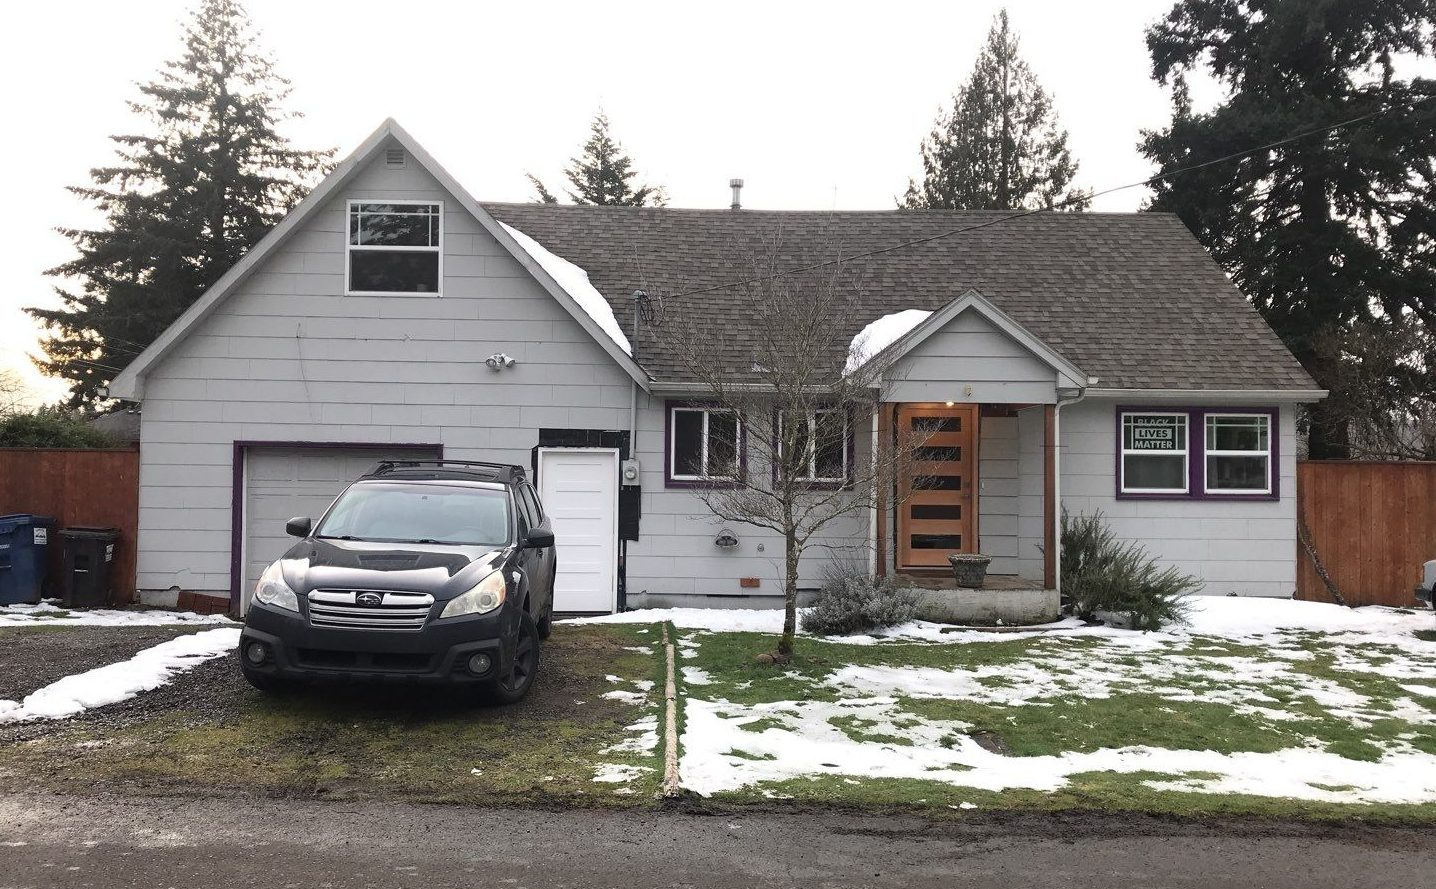 Before SE Portland home had removal of siding and replaced with new siding